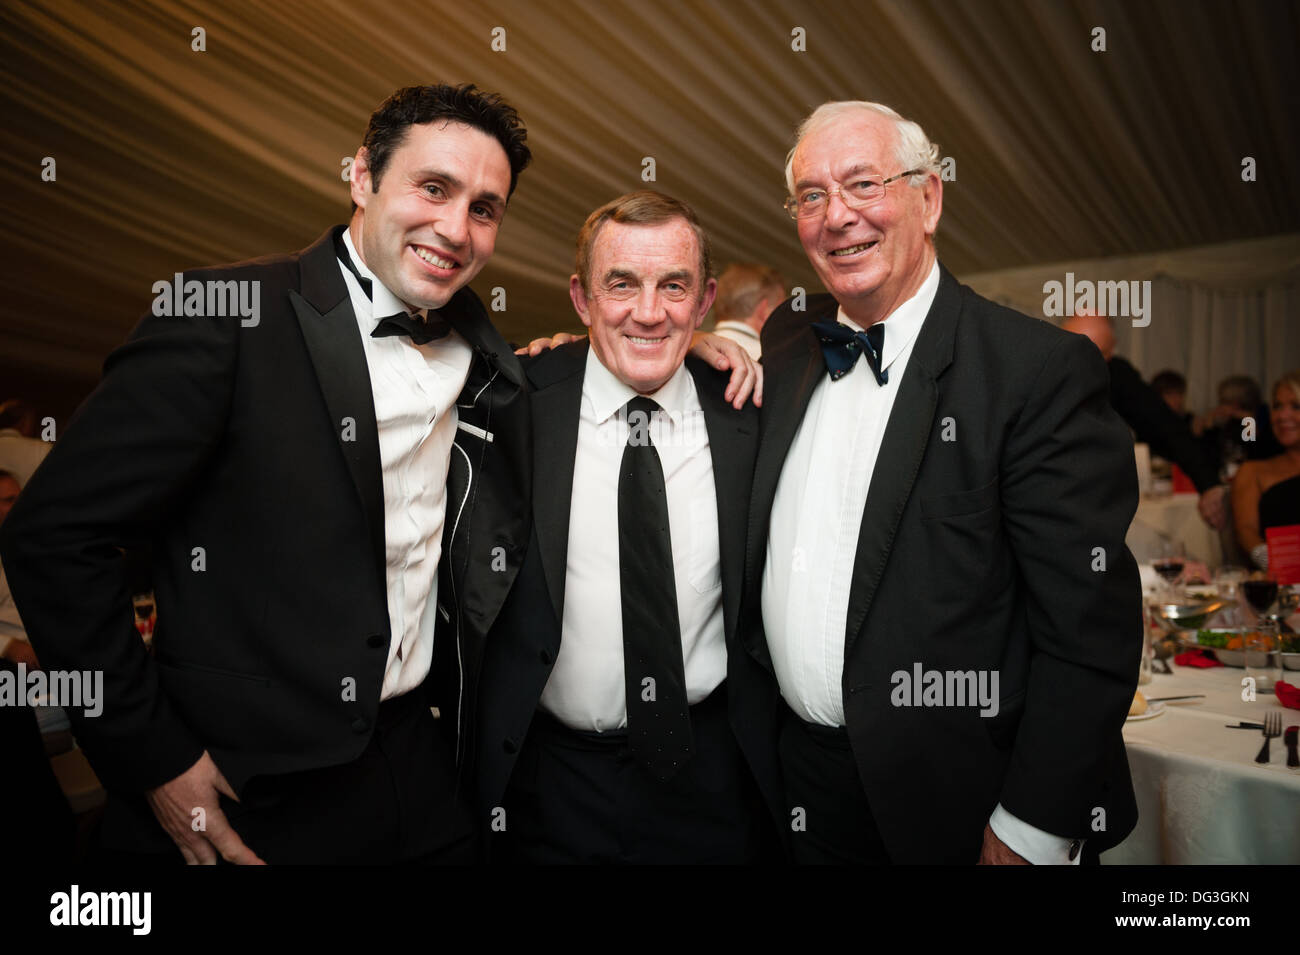 Three legendary Wales international rugby players together - STEPHEN JONES, PHIL BENNETT, JOHN DAWES - Stock Image